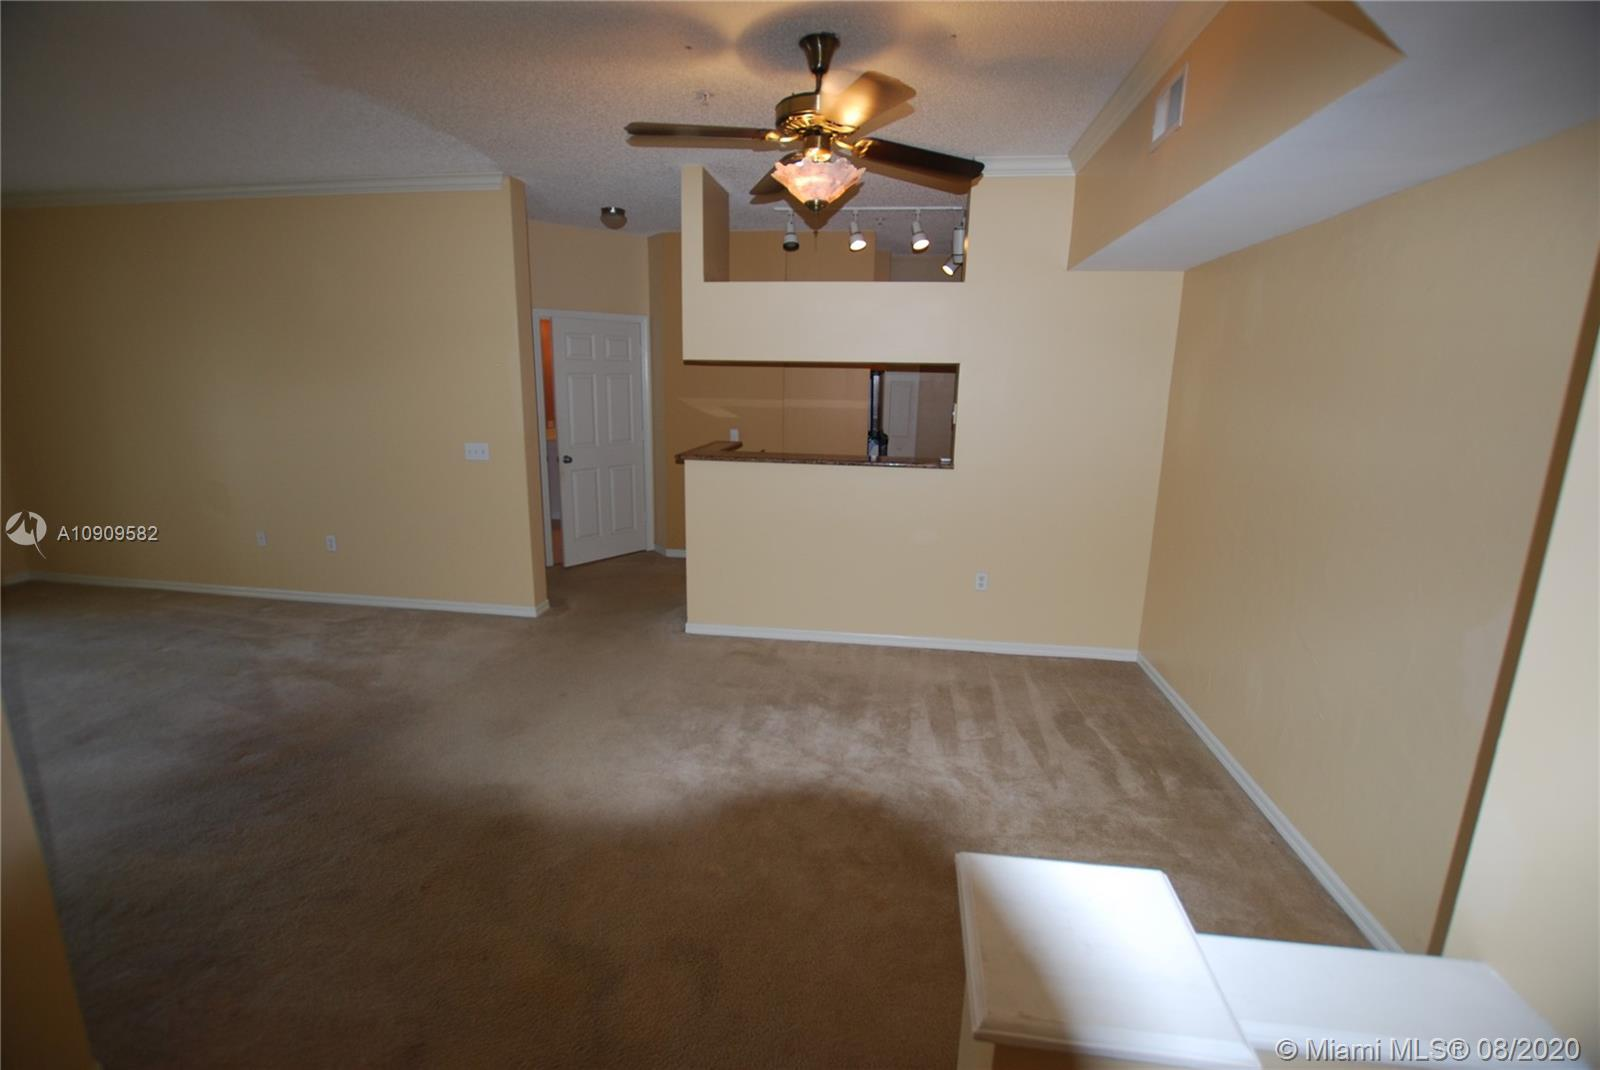 Tuscany on the Intracoastal 2/2 on 4th Floor. Close to Clubhouse, Pool, Gym, Tennis. Walking distanc